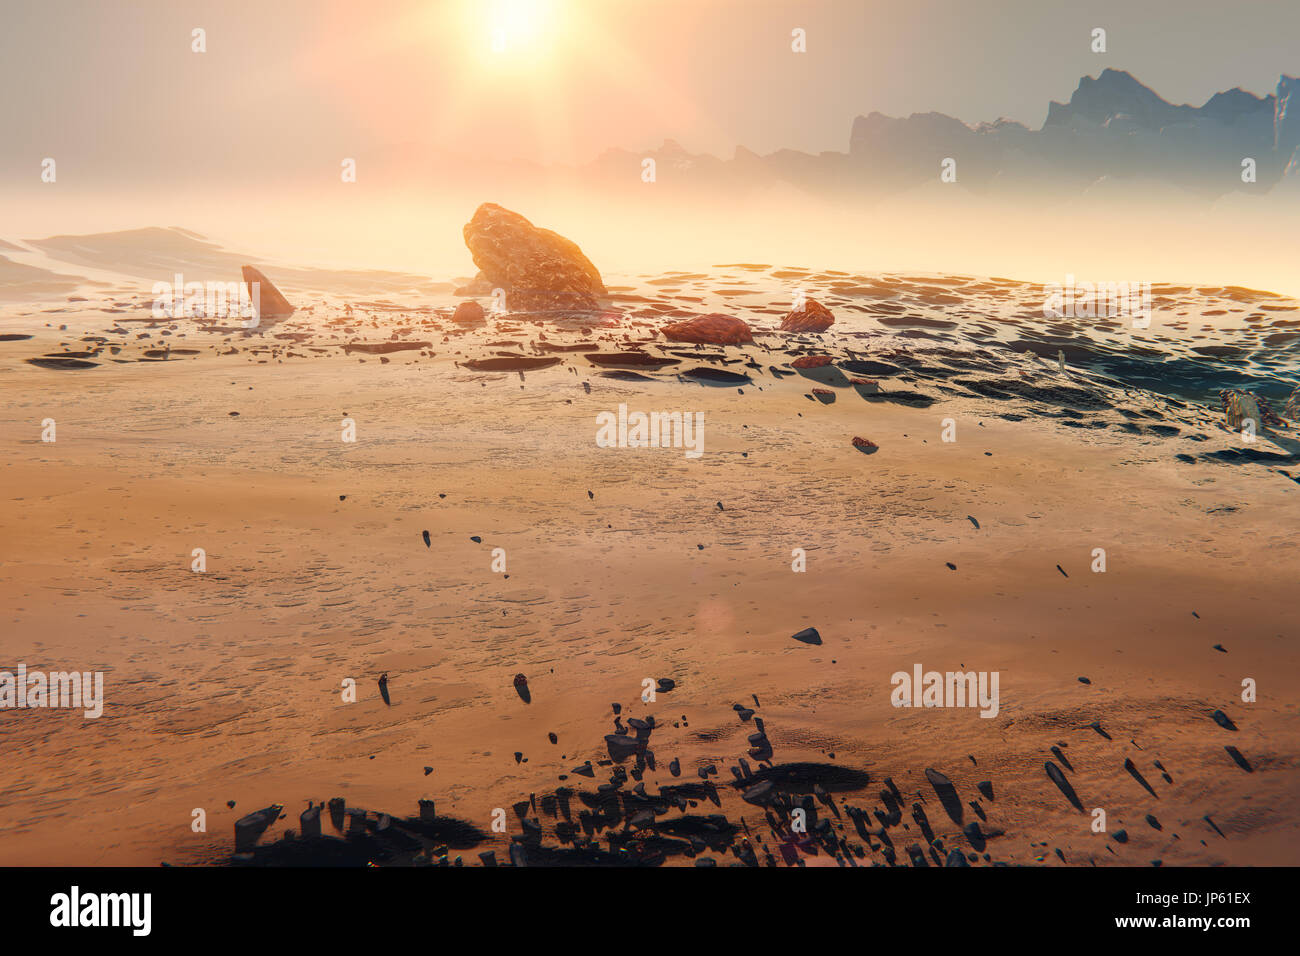 Sunset over the Martian landscape. Rocks and mountains in the mist, 3d illustration Stock Photo